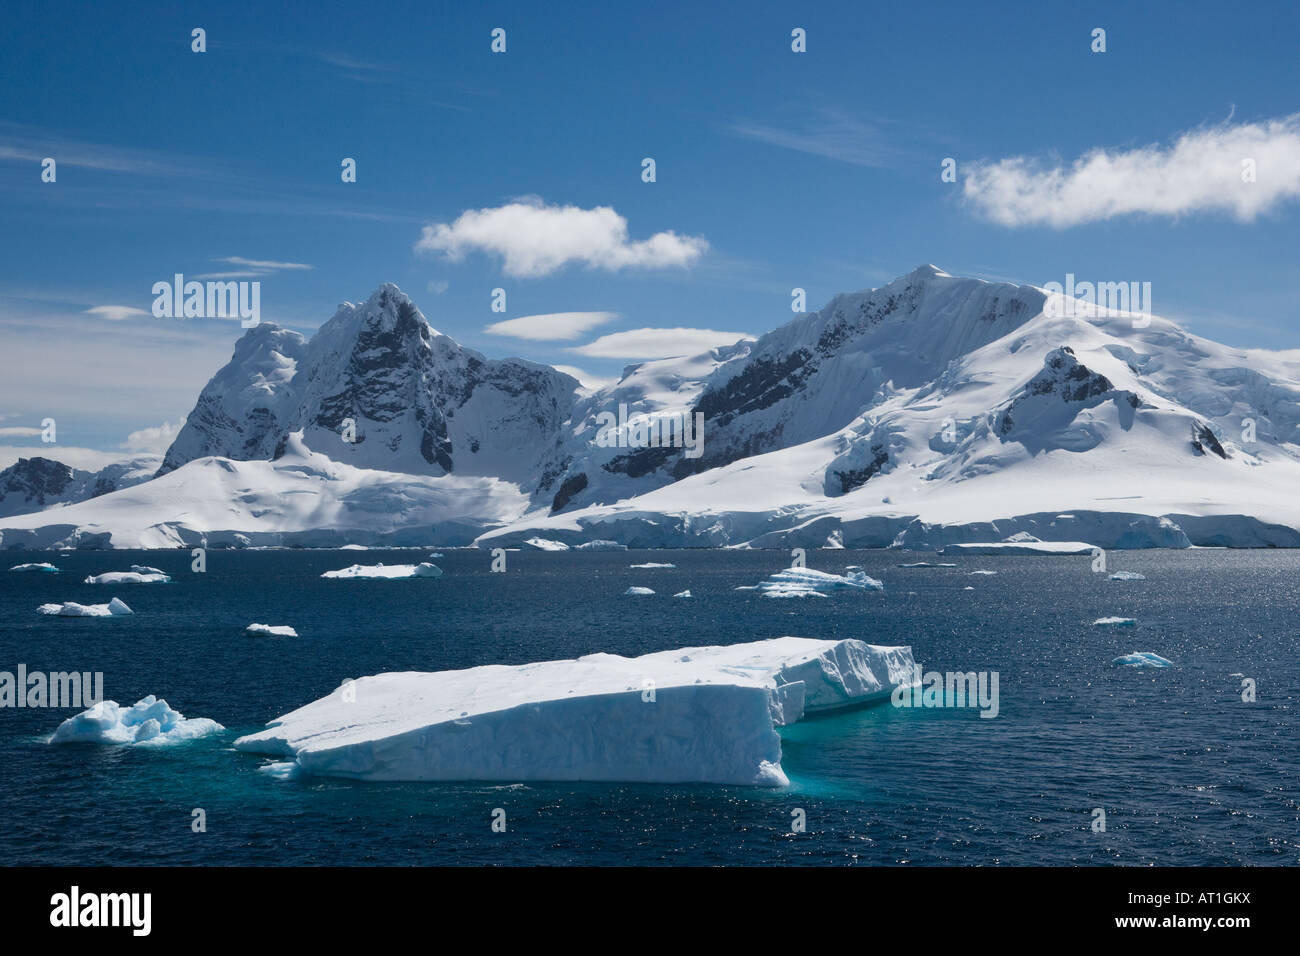 Tabular iceberg floating in front of a snow covered mountain range Stock Photo